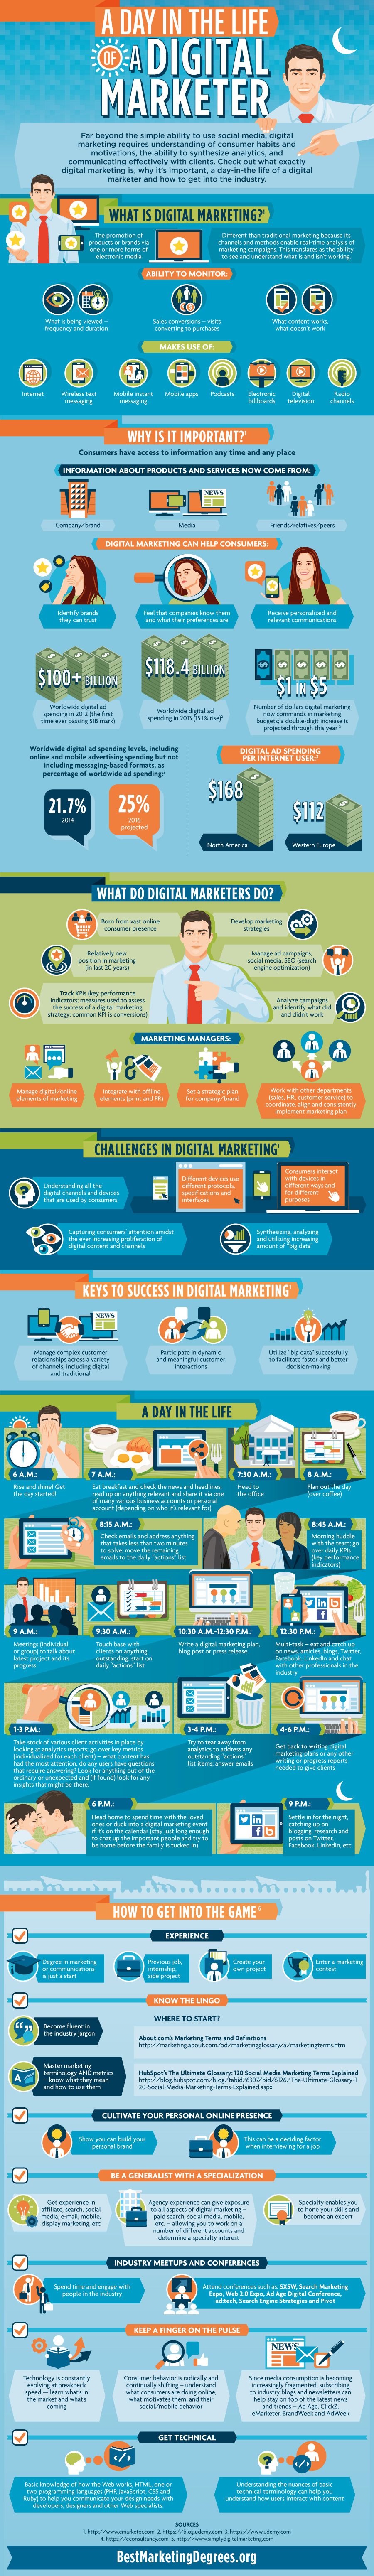 digital-marketer-infographic